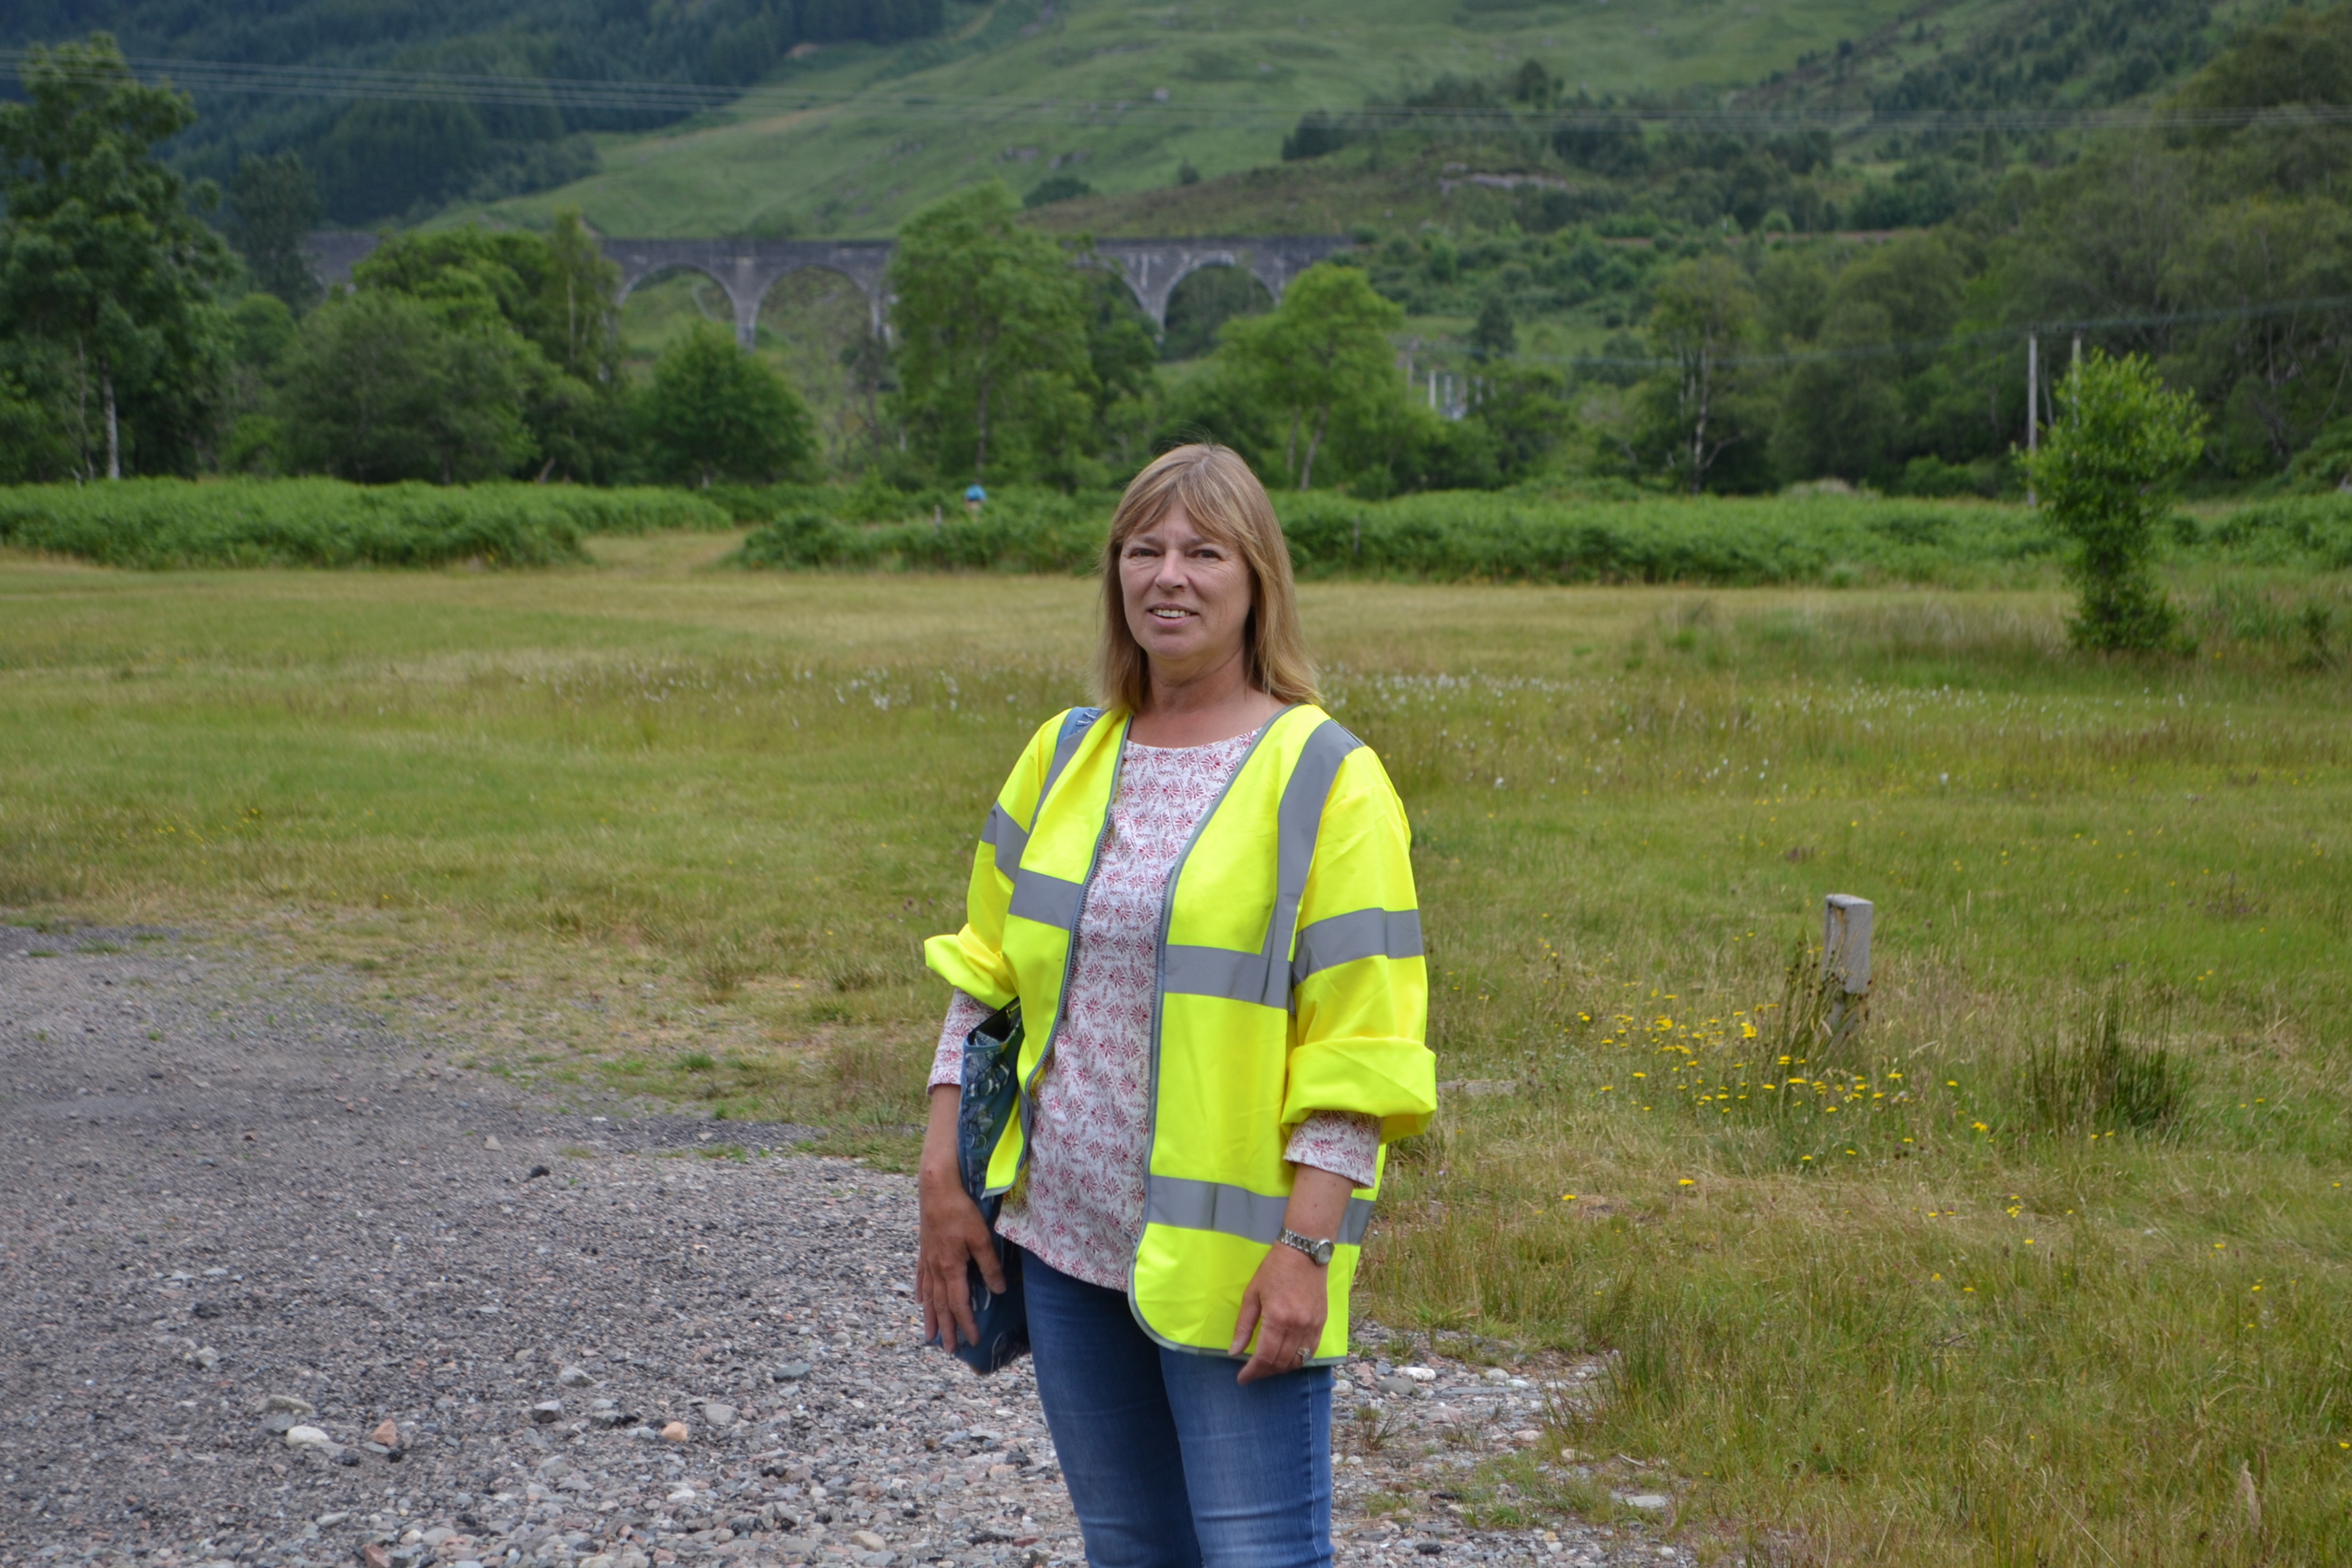 Fiona Gibson has campaigned as part of the community council, which is currently in abeyance, for a reduced speed limit